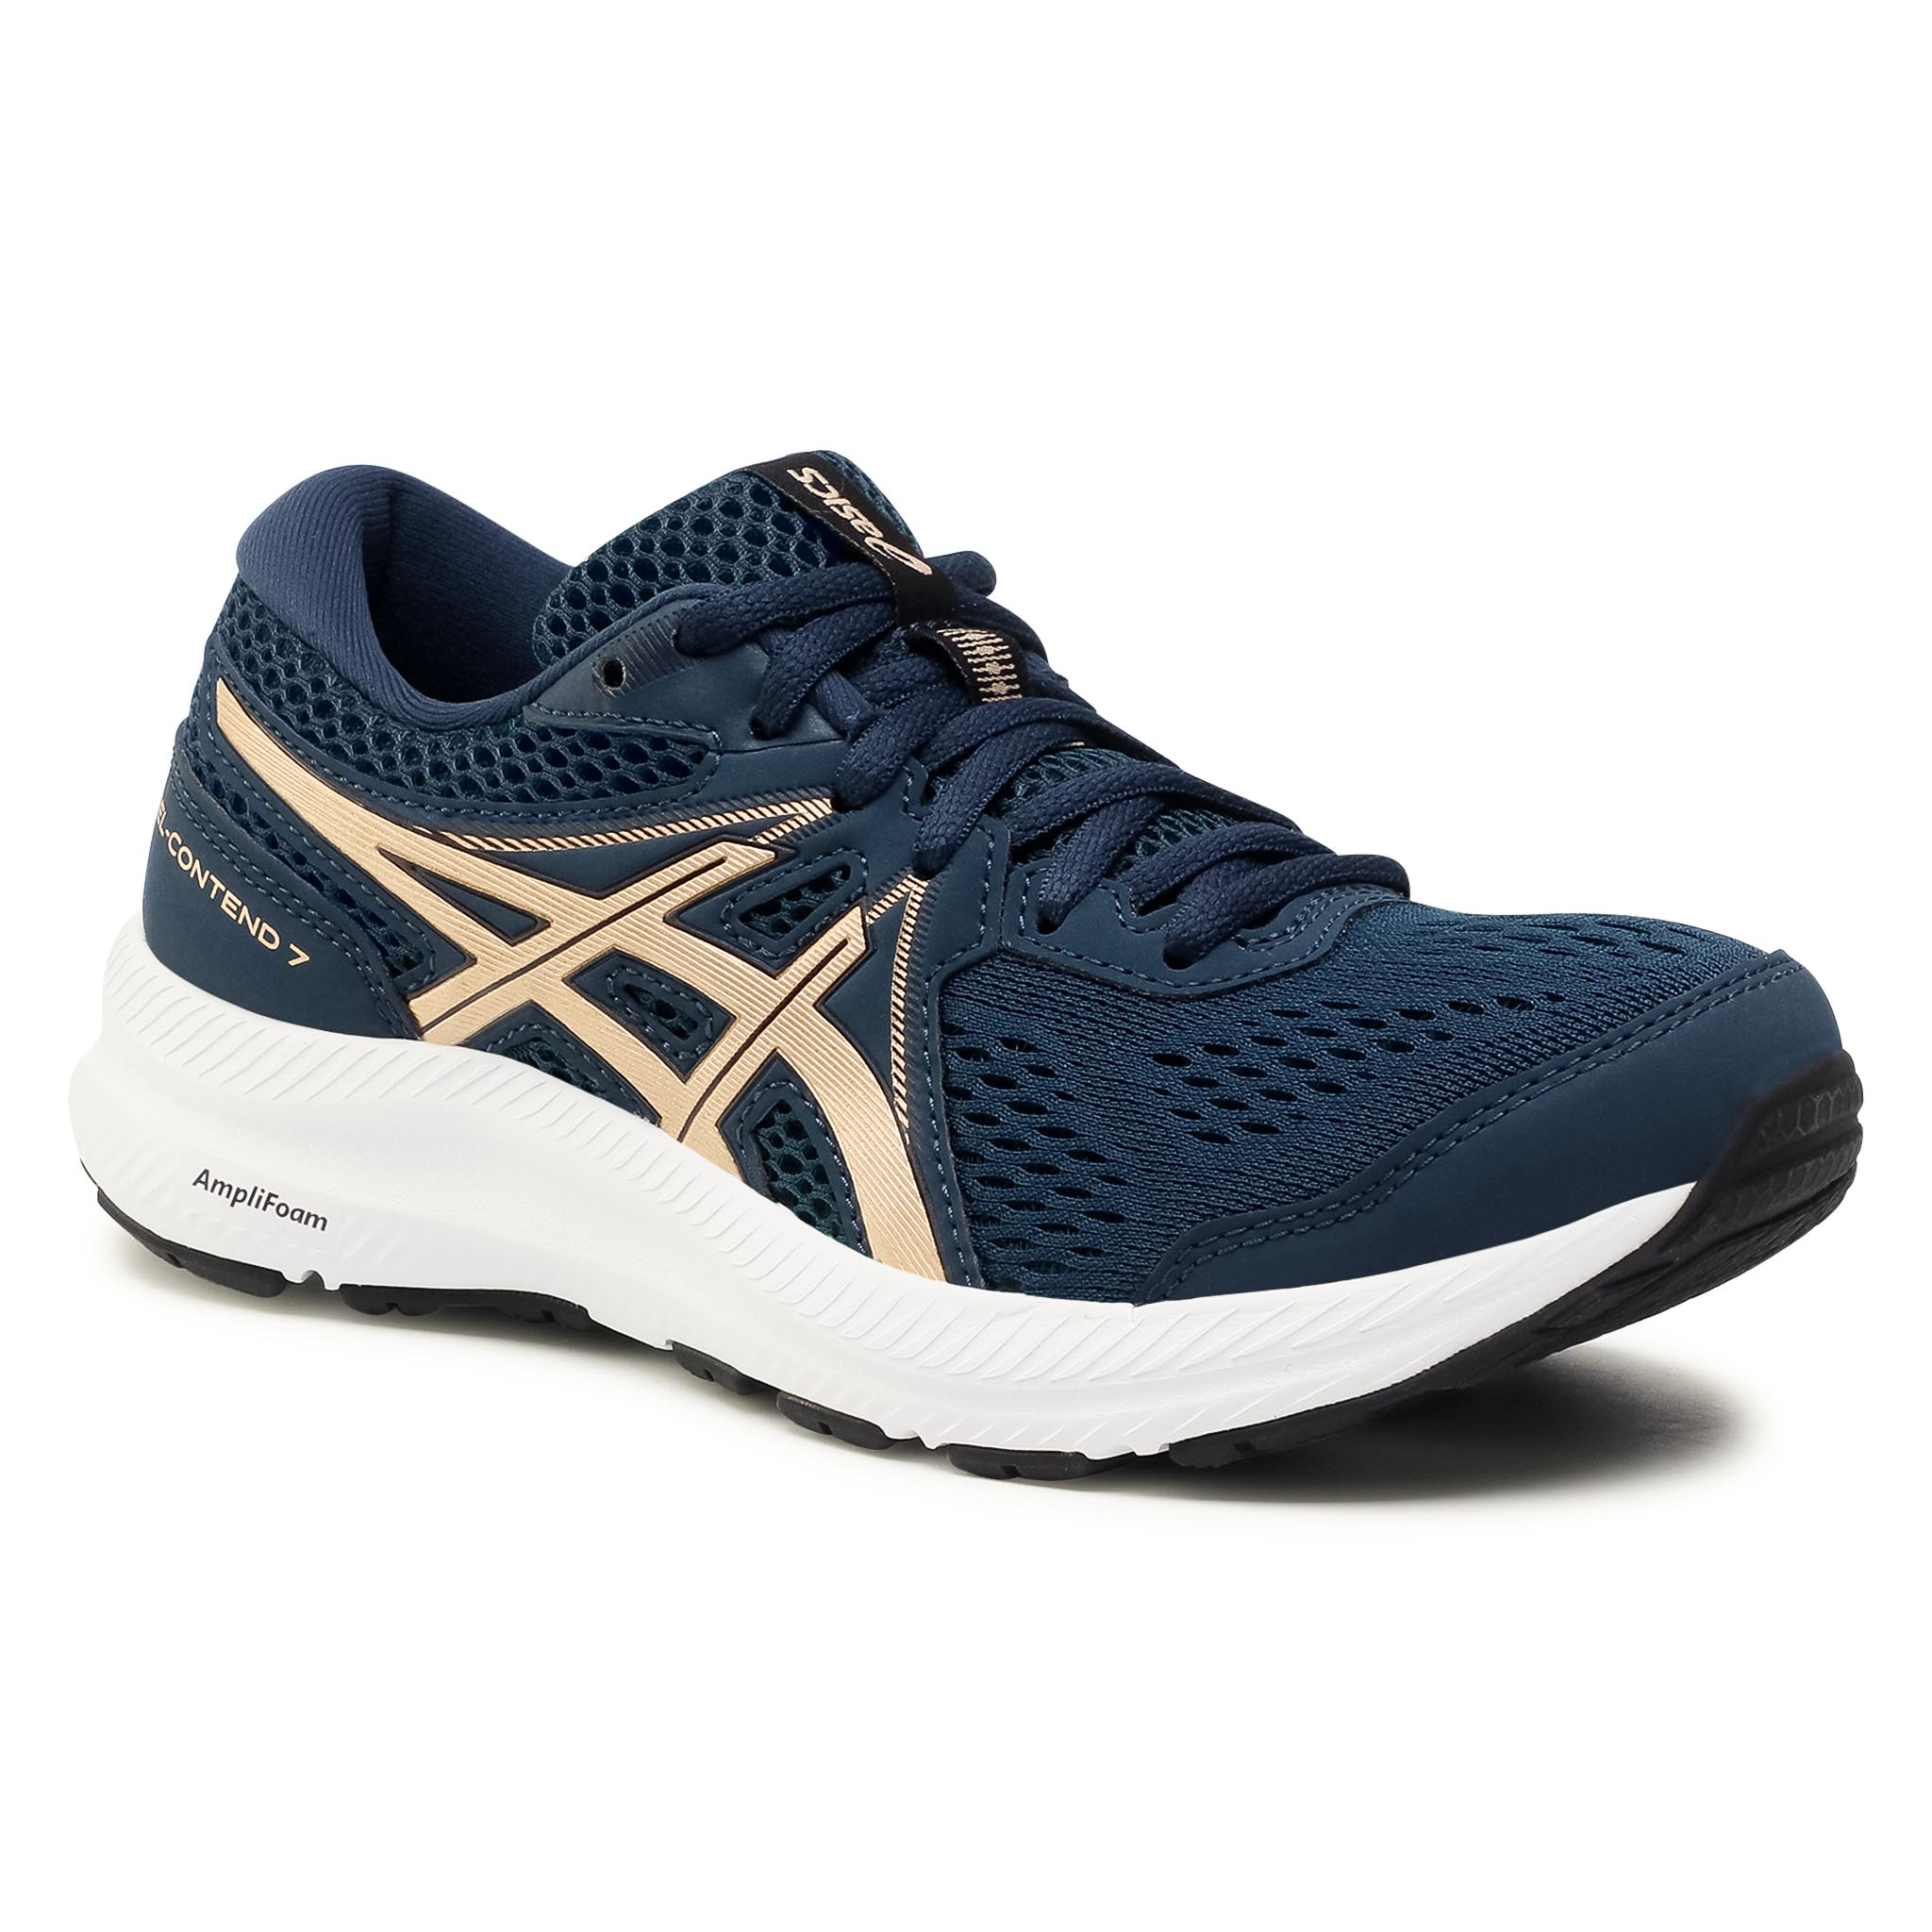 Batai ASICS - Gel-Contend 7 1012A911 French Blue/Champagne 401